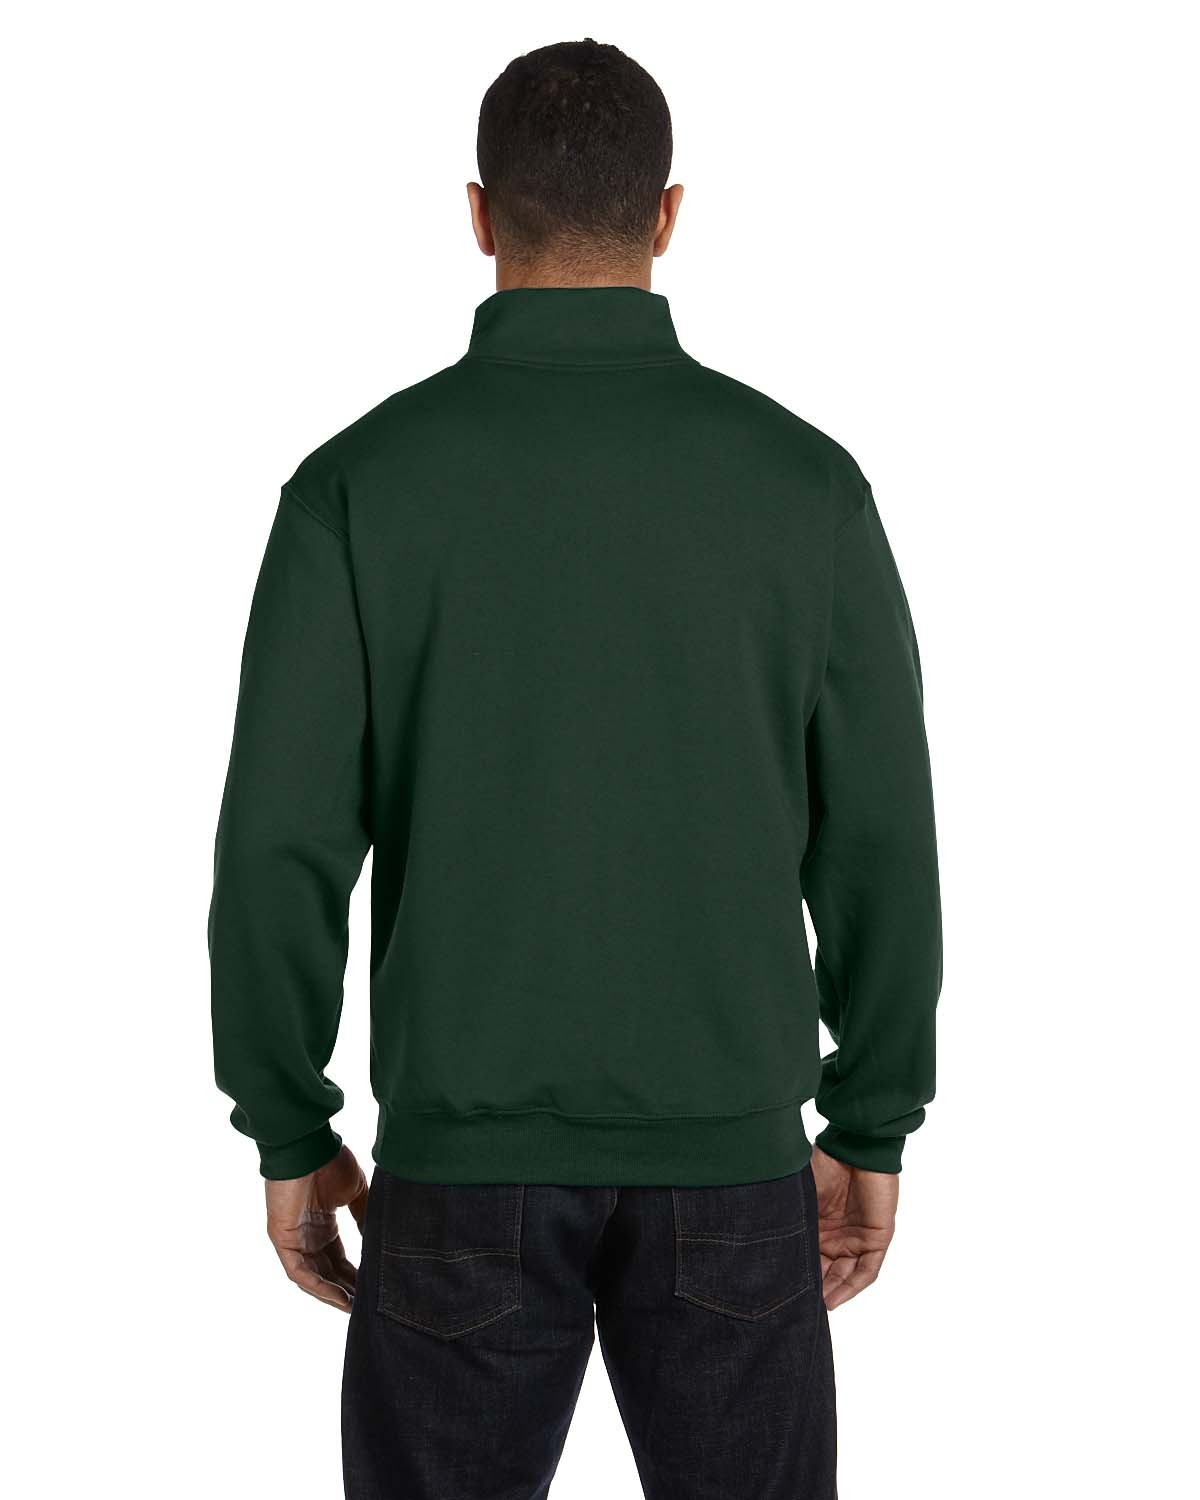 995M Jerzees FOREST GREEN